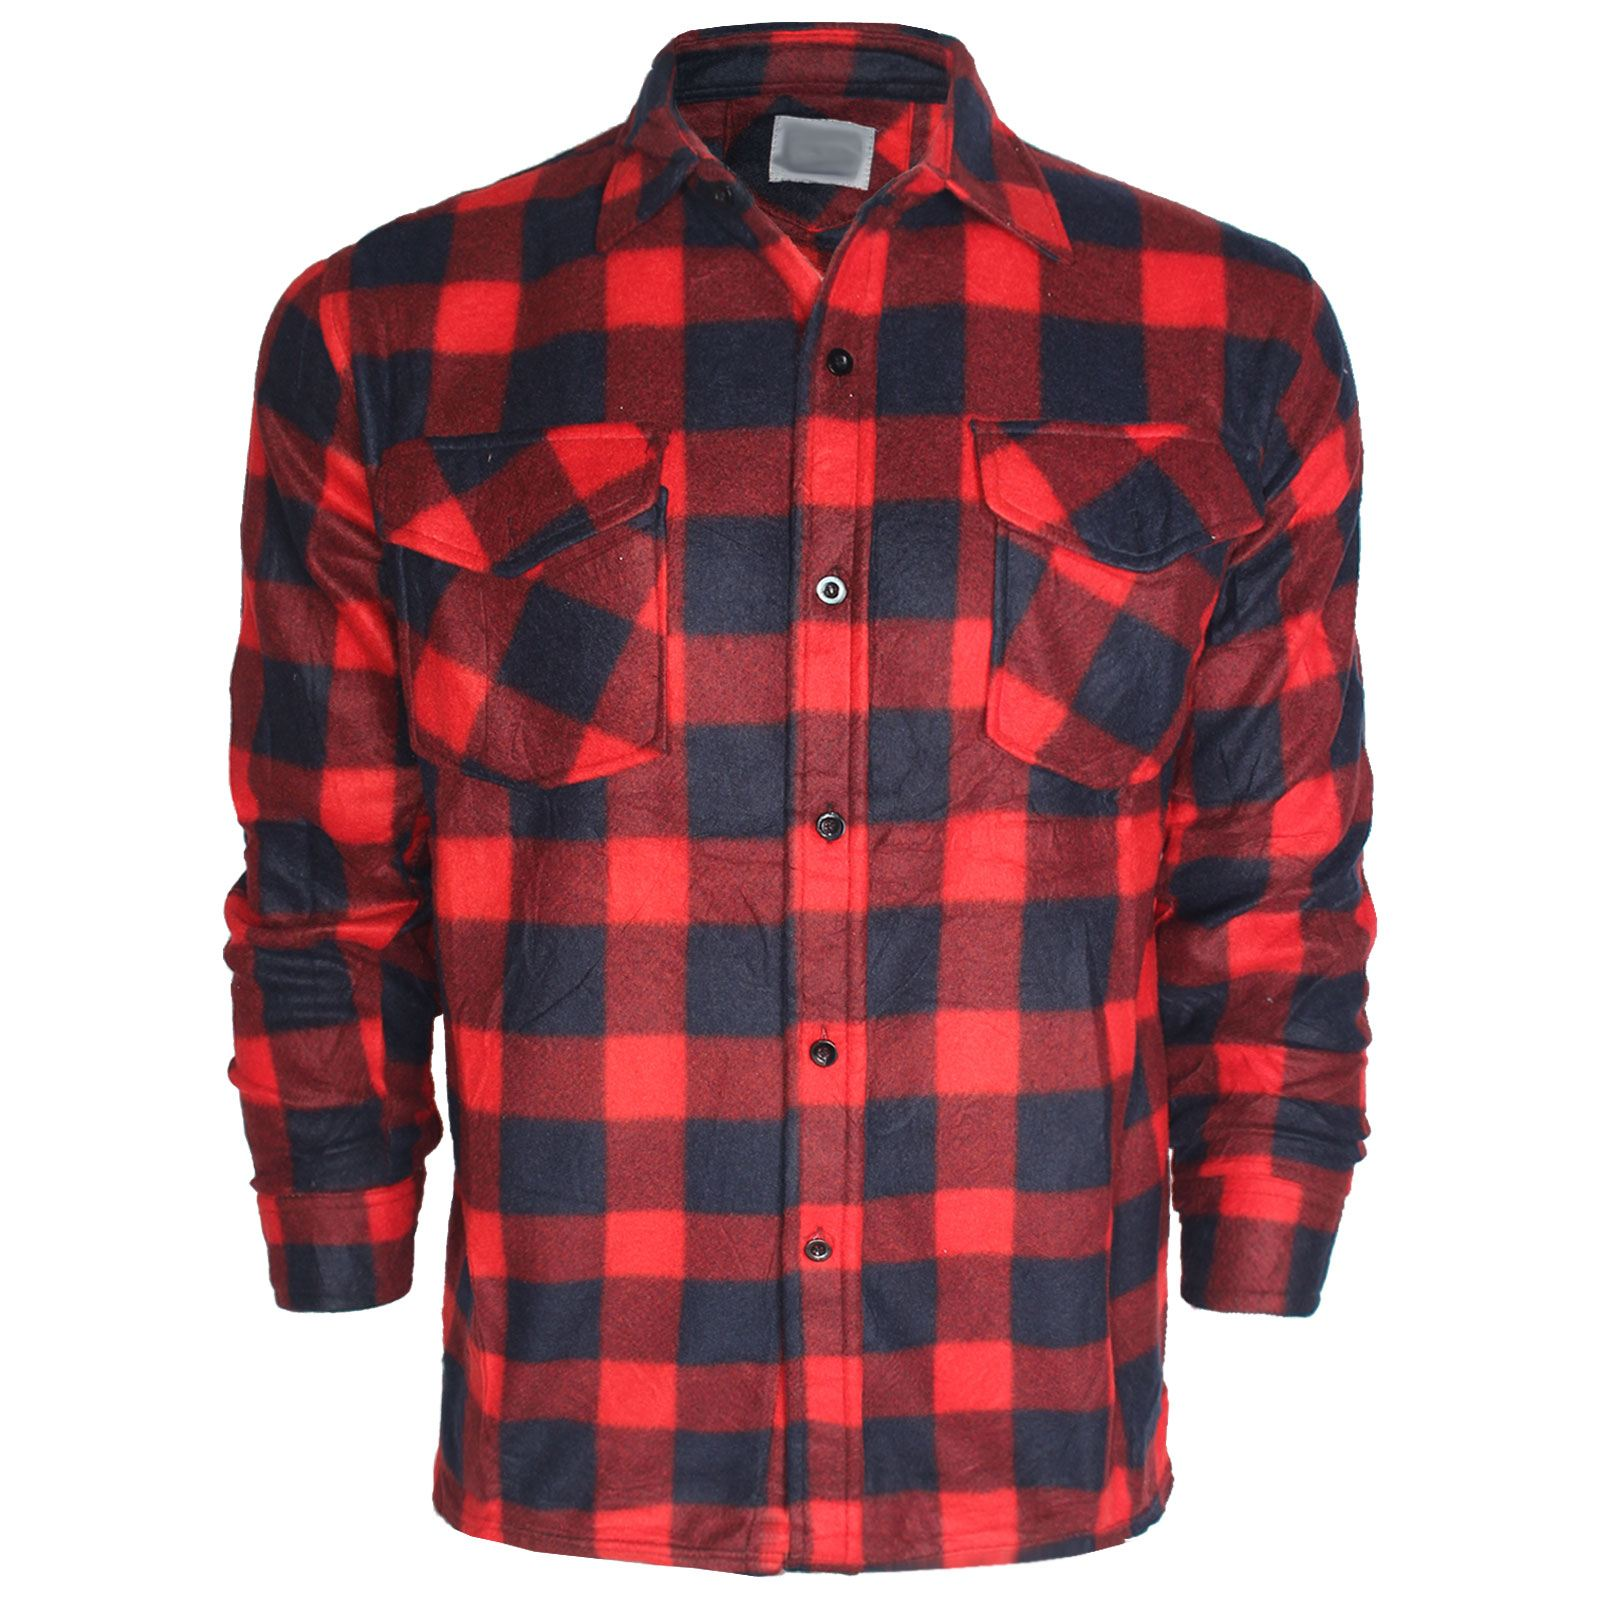 Shop for womens warm flannel shirts online at Target. Free shipping & returns and save 5% every day with your Target REDcard.